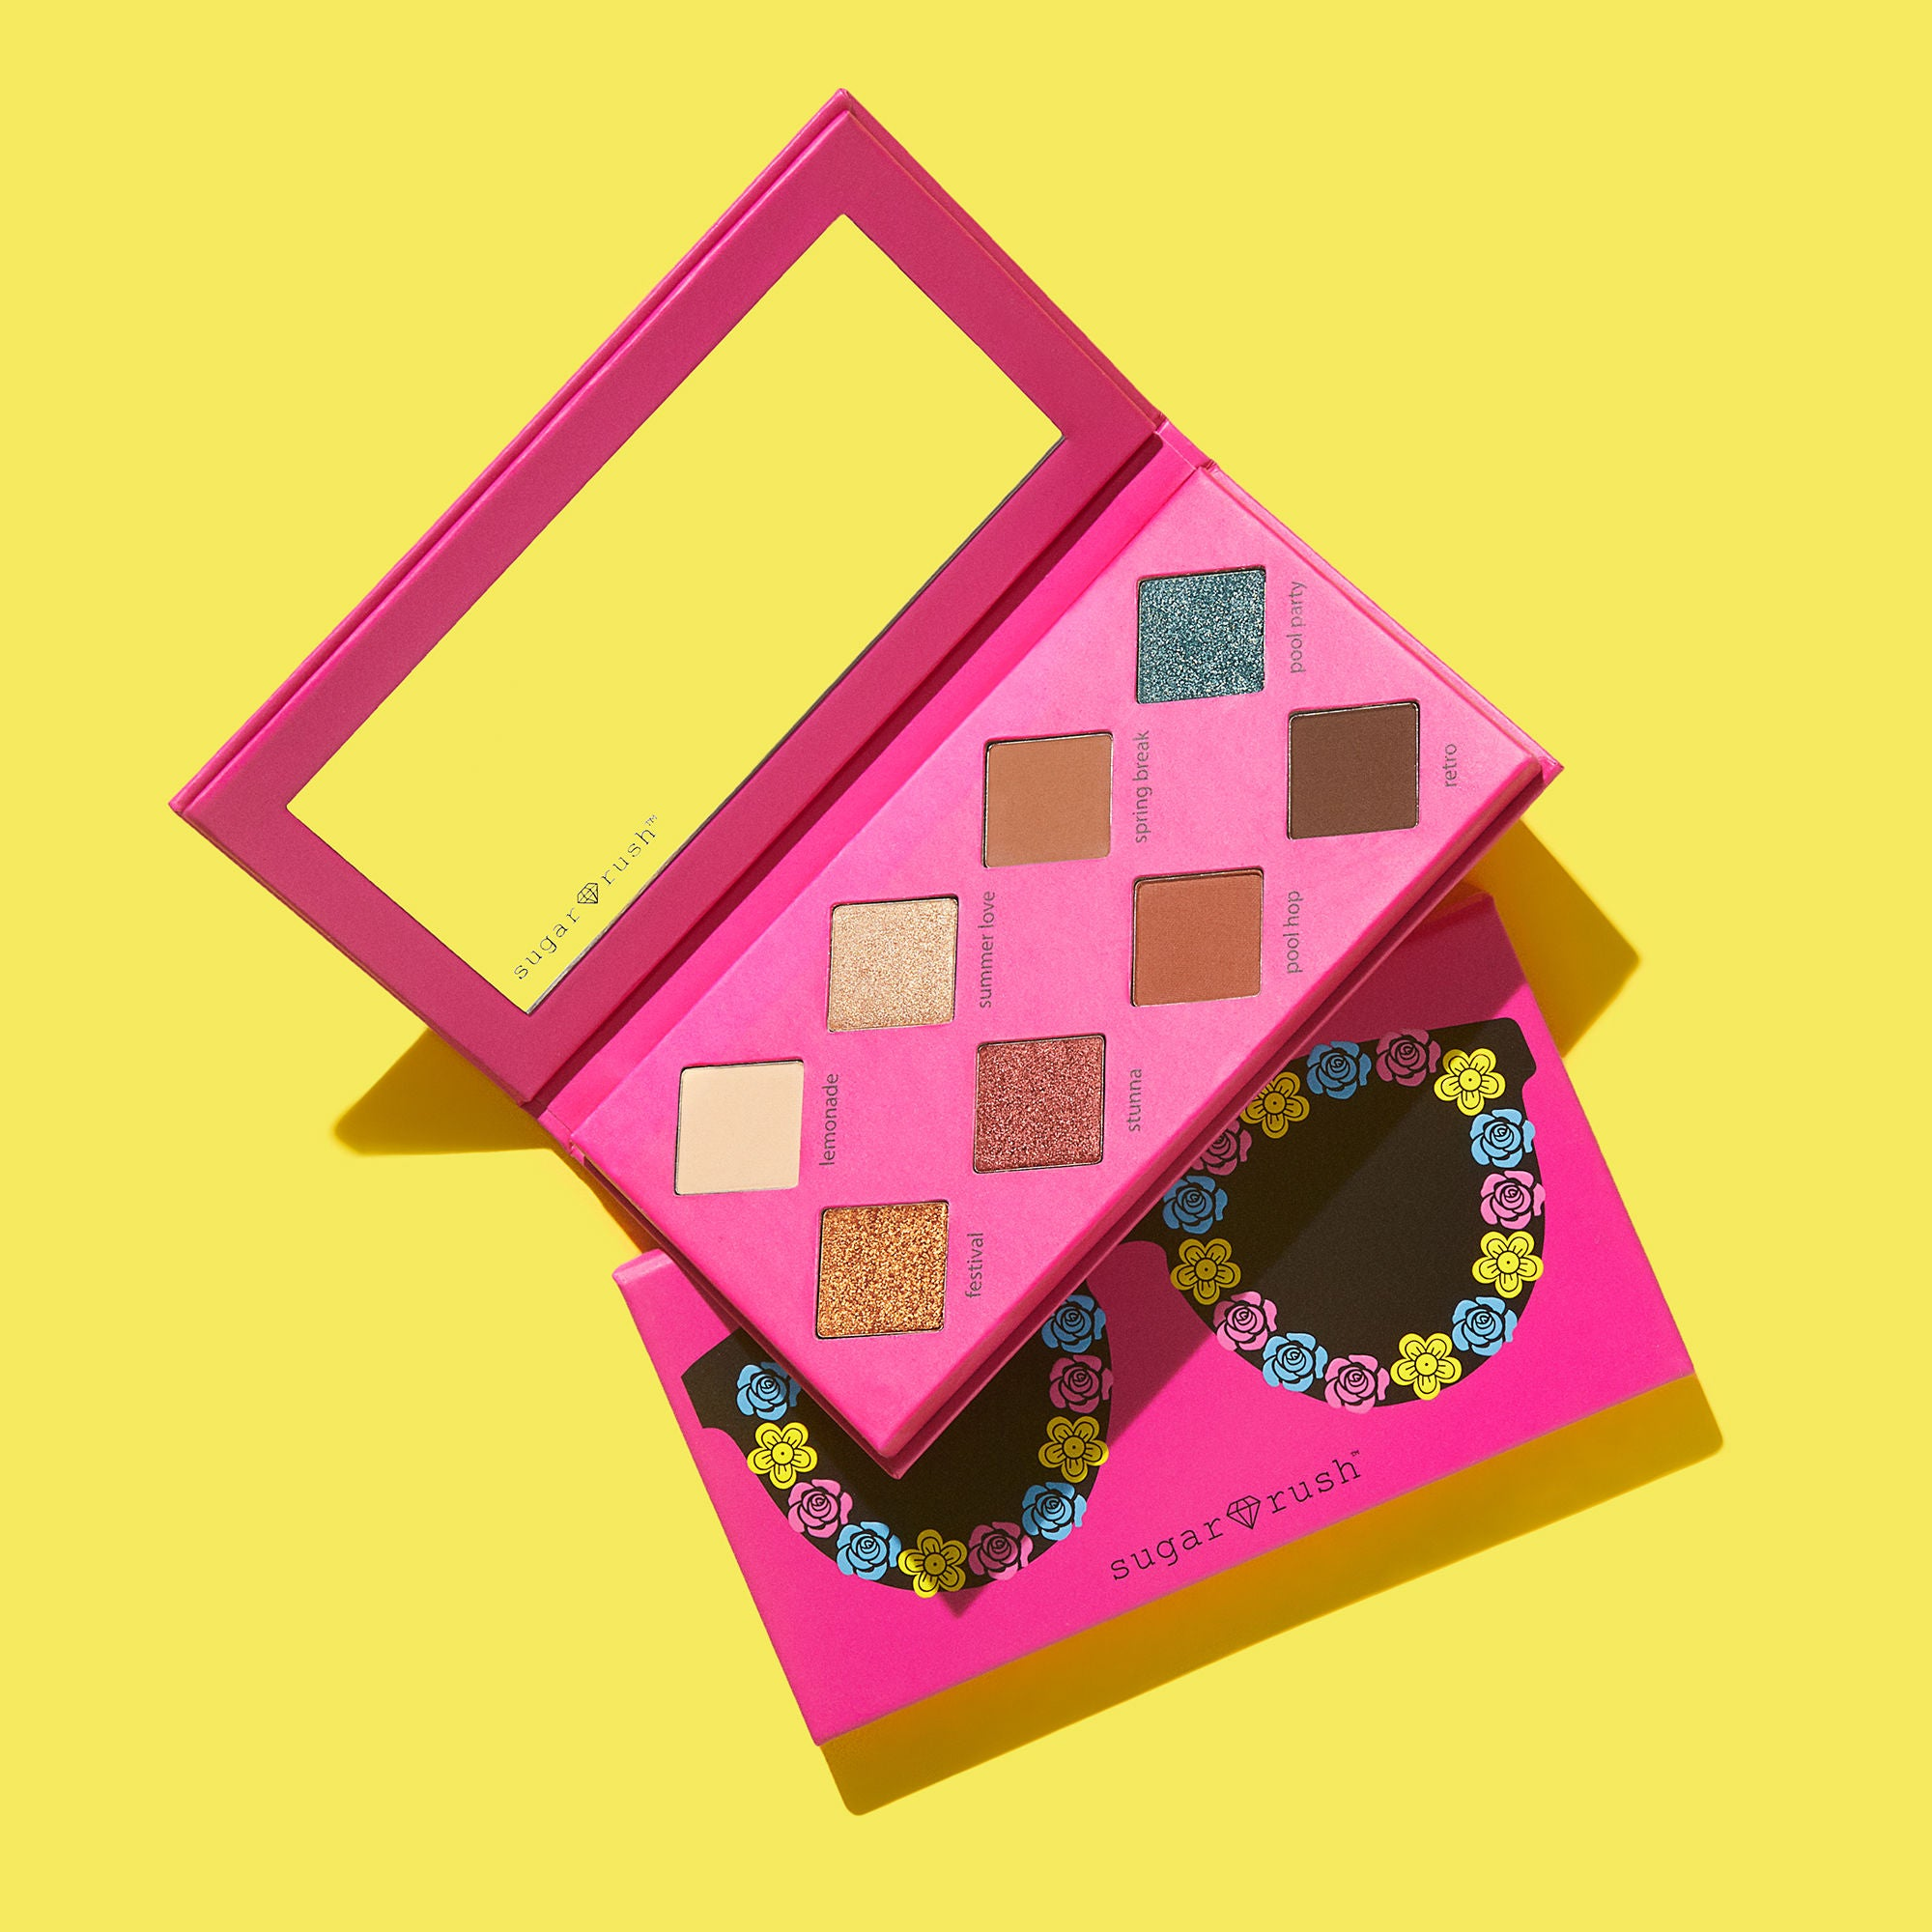 Sugar Rush - keep calm, sunnies on eyeshadow palette